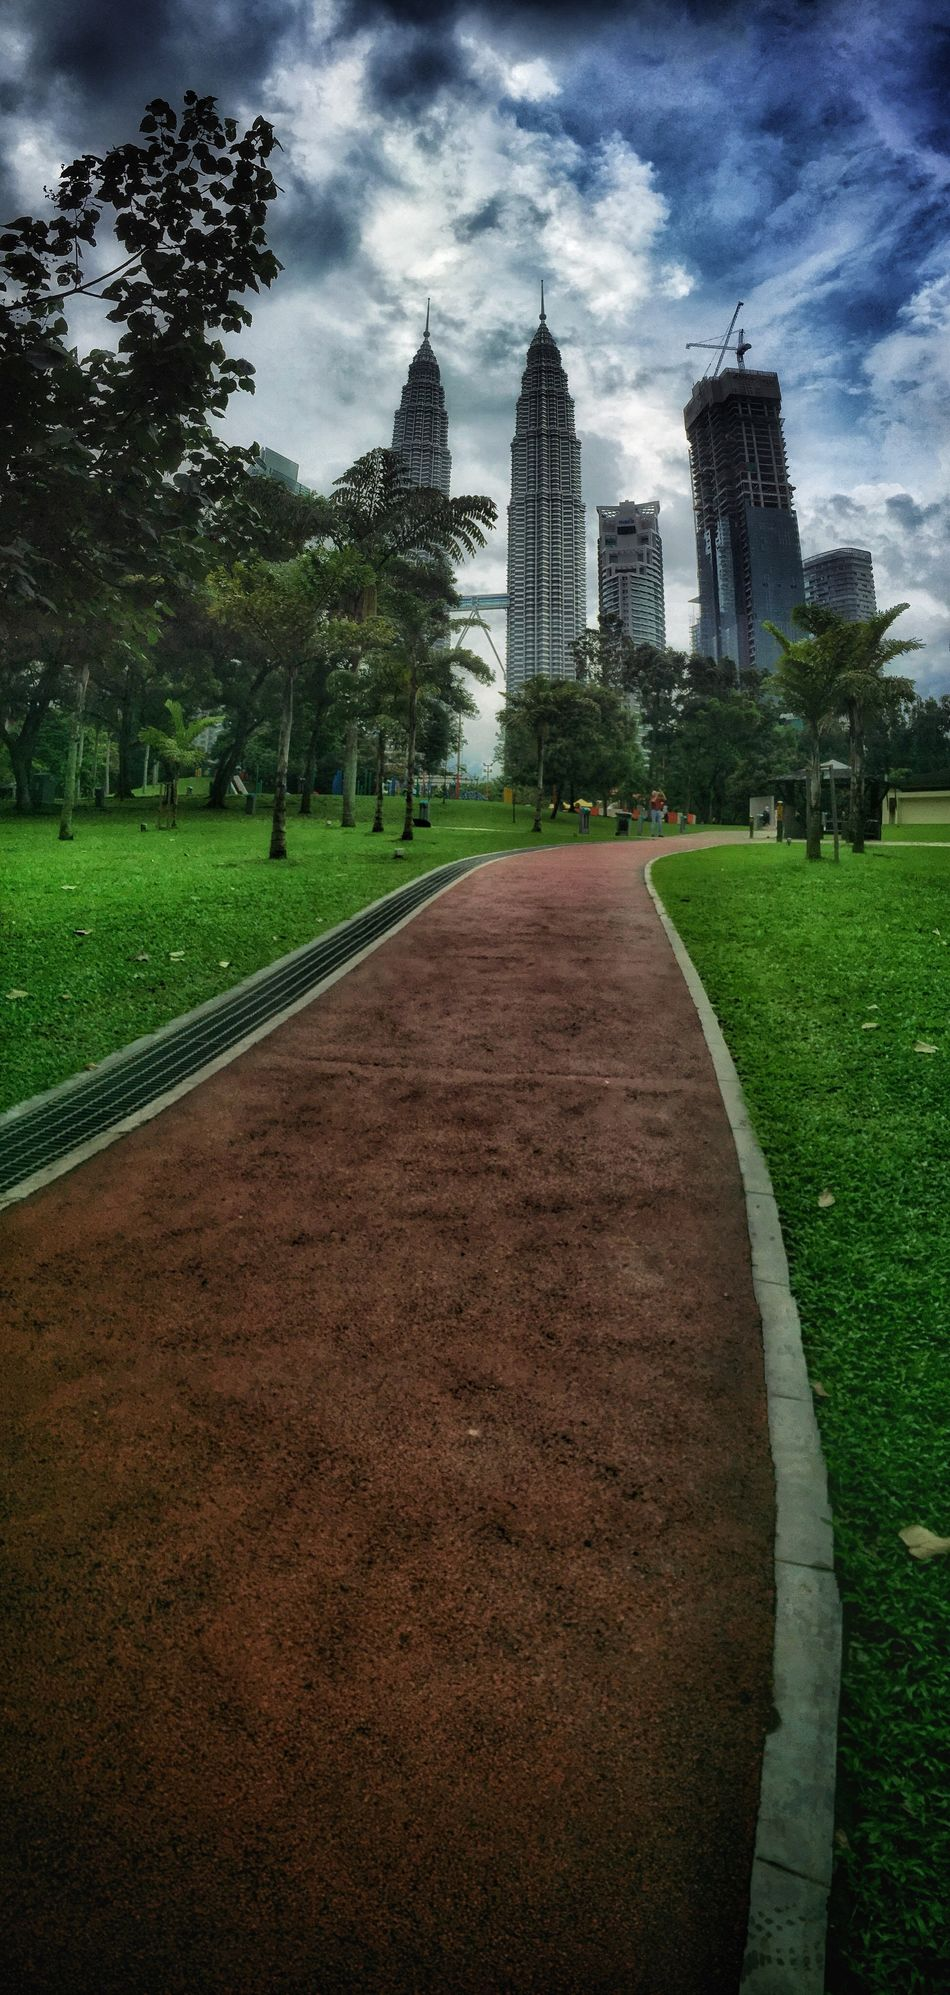 KLCC Park Tree Architecture Built Structure Grass Sky Building Exterior Cloud - Sky City Outdoors Road Skyscraper Travel Destinations Modern Day Cityscape Nature Architecture Modern Kuala Lumpur Twin Tower Petronas KLCC Park IPhone IPhoneography